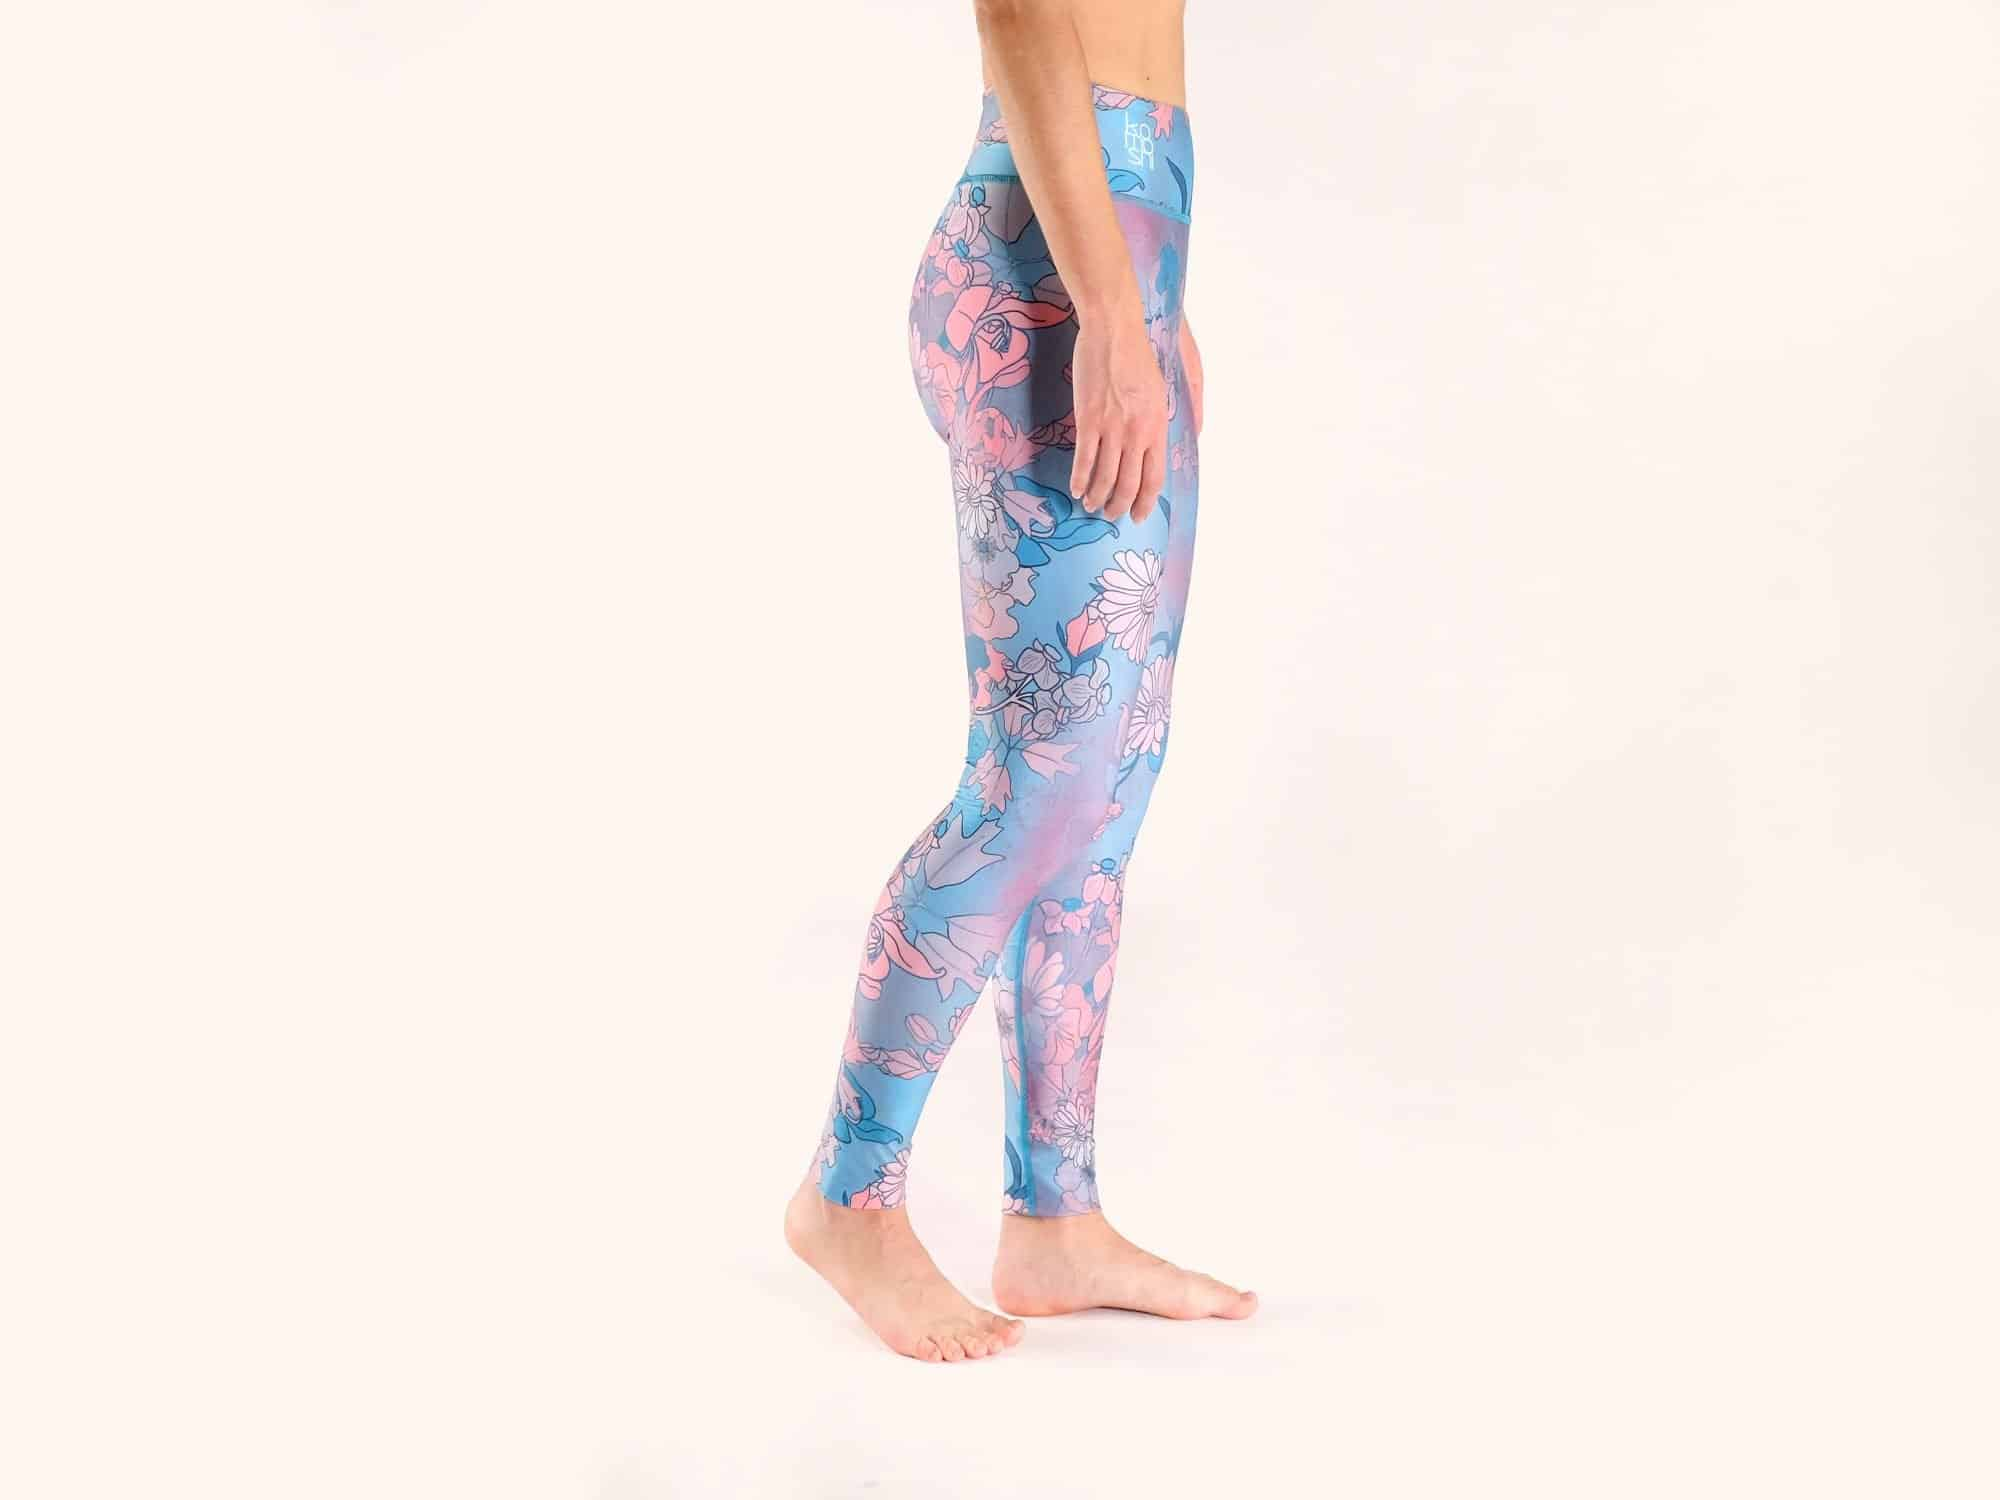 SHANTI KOMOSHI LEGGINGS RIGHT